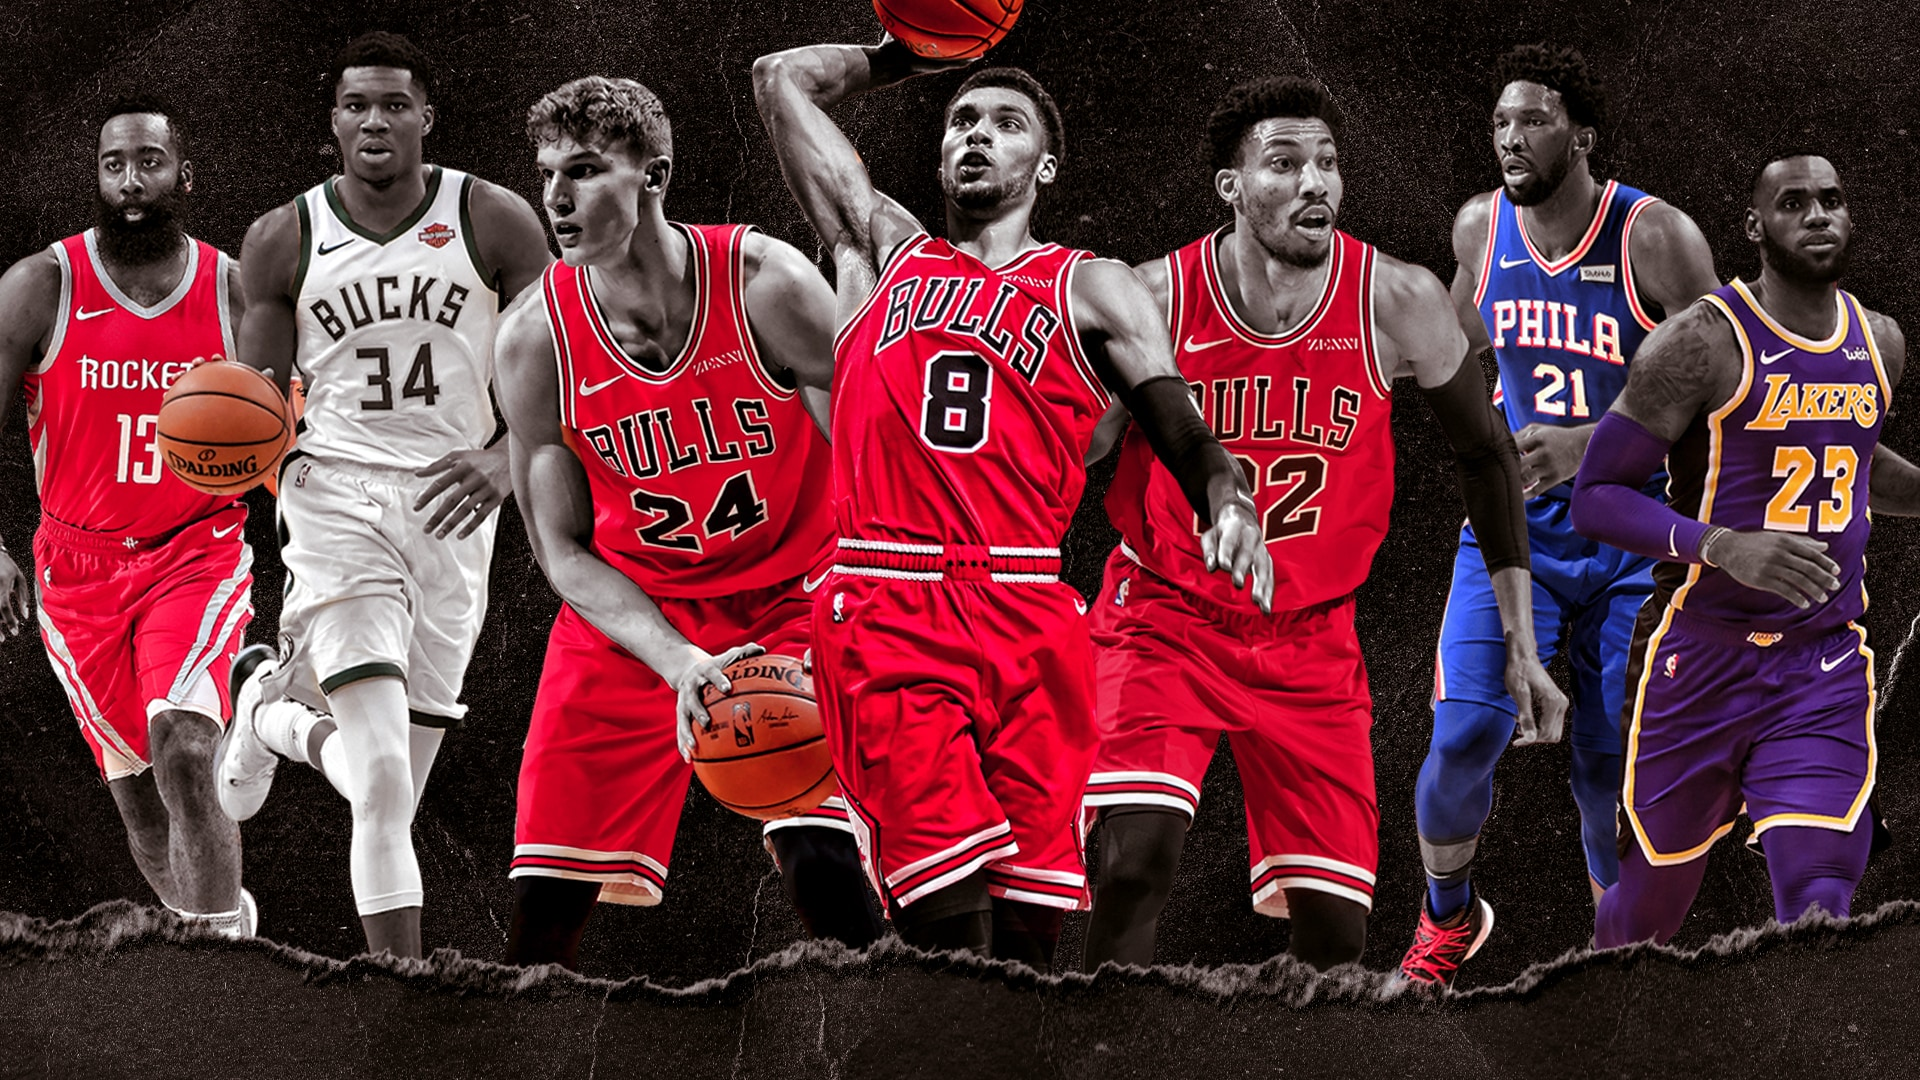 photograph regarding Bulls Schedule Printable referred to as Chicago Bulls announce 2019-20 Timetable Chicago Bulls